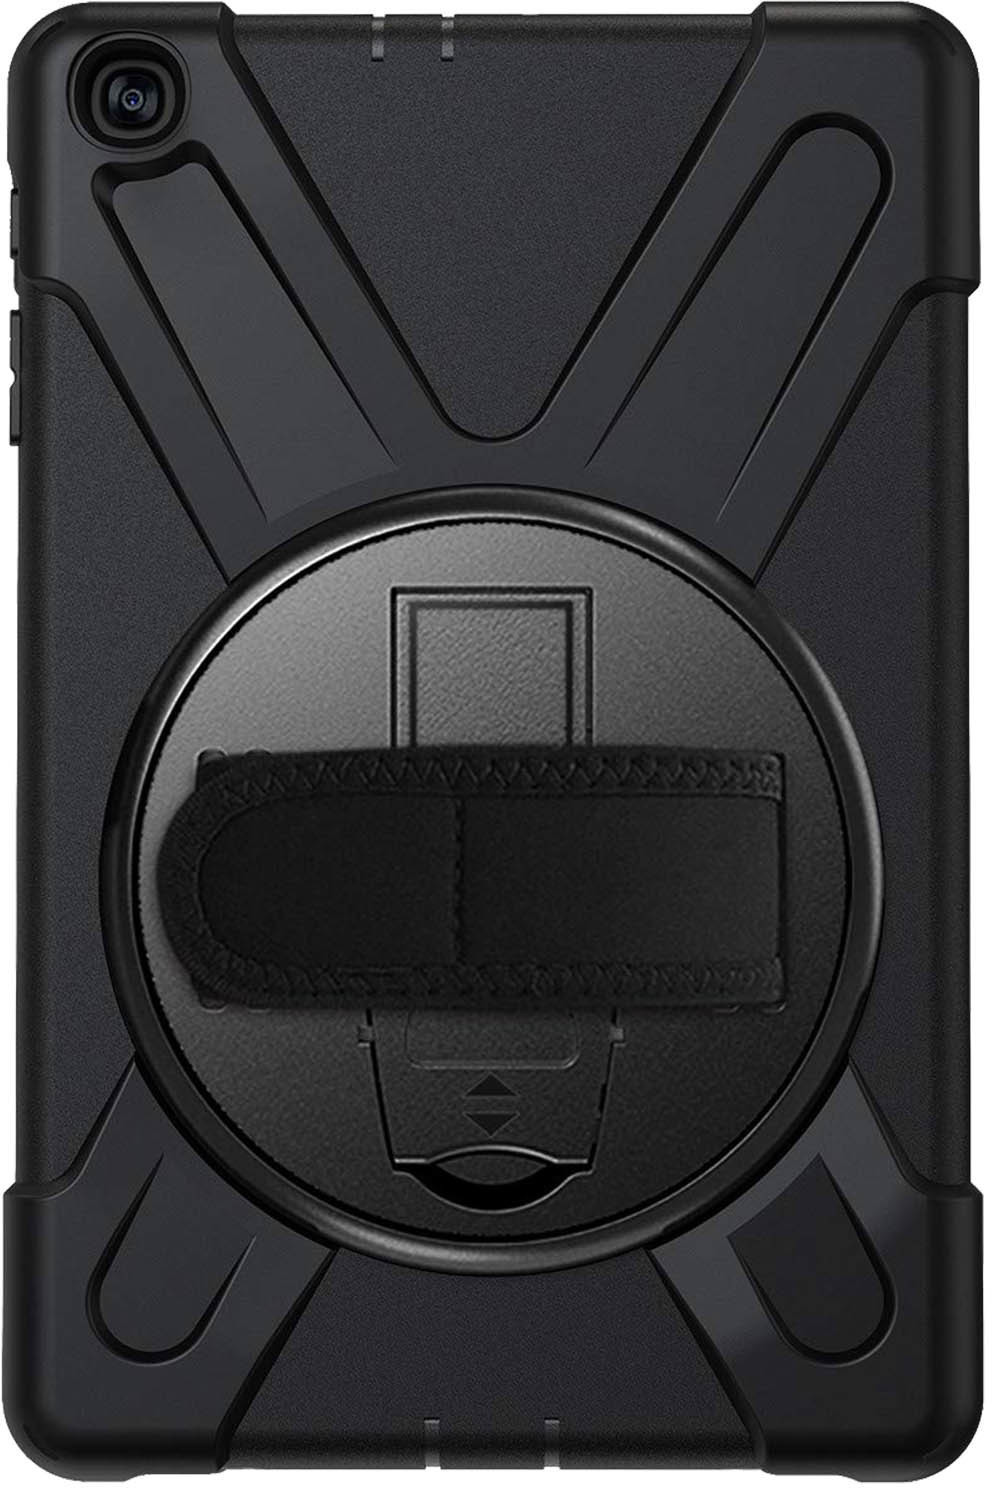 Image of Avizar Case Galaxy Tab A 10.1 2019 Black (BACK-XSHAPE-T515)